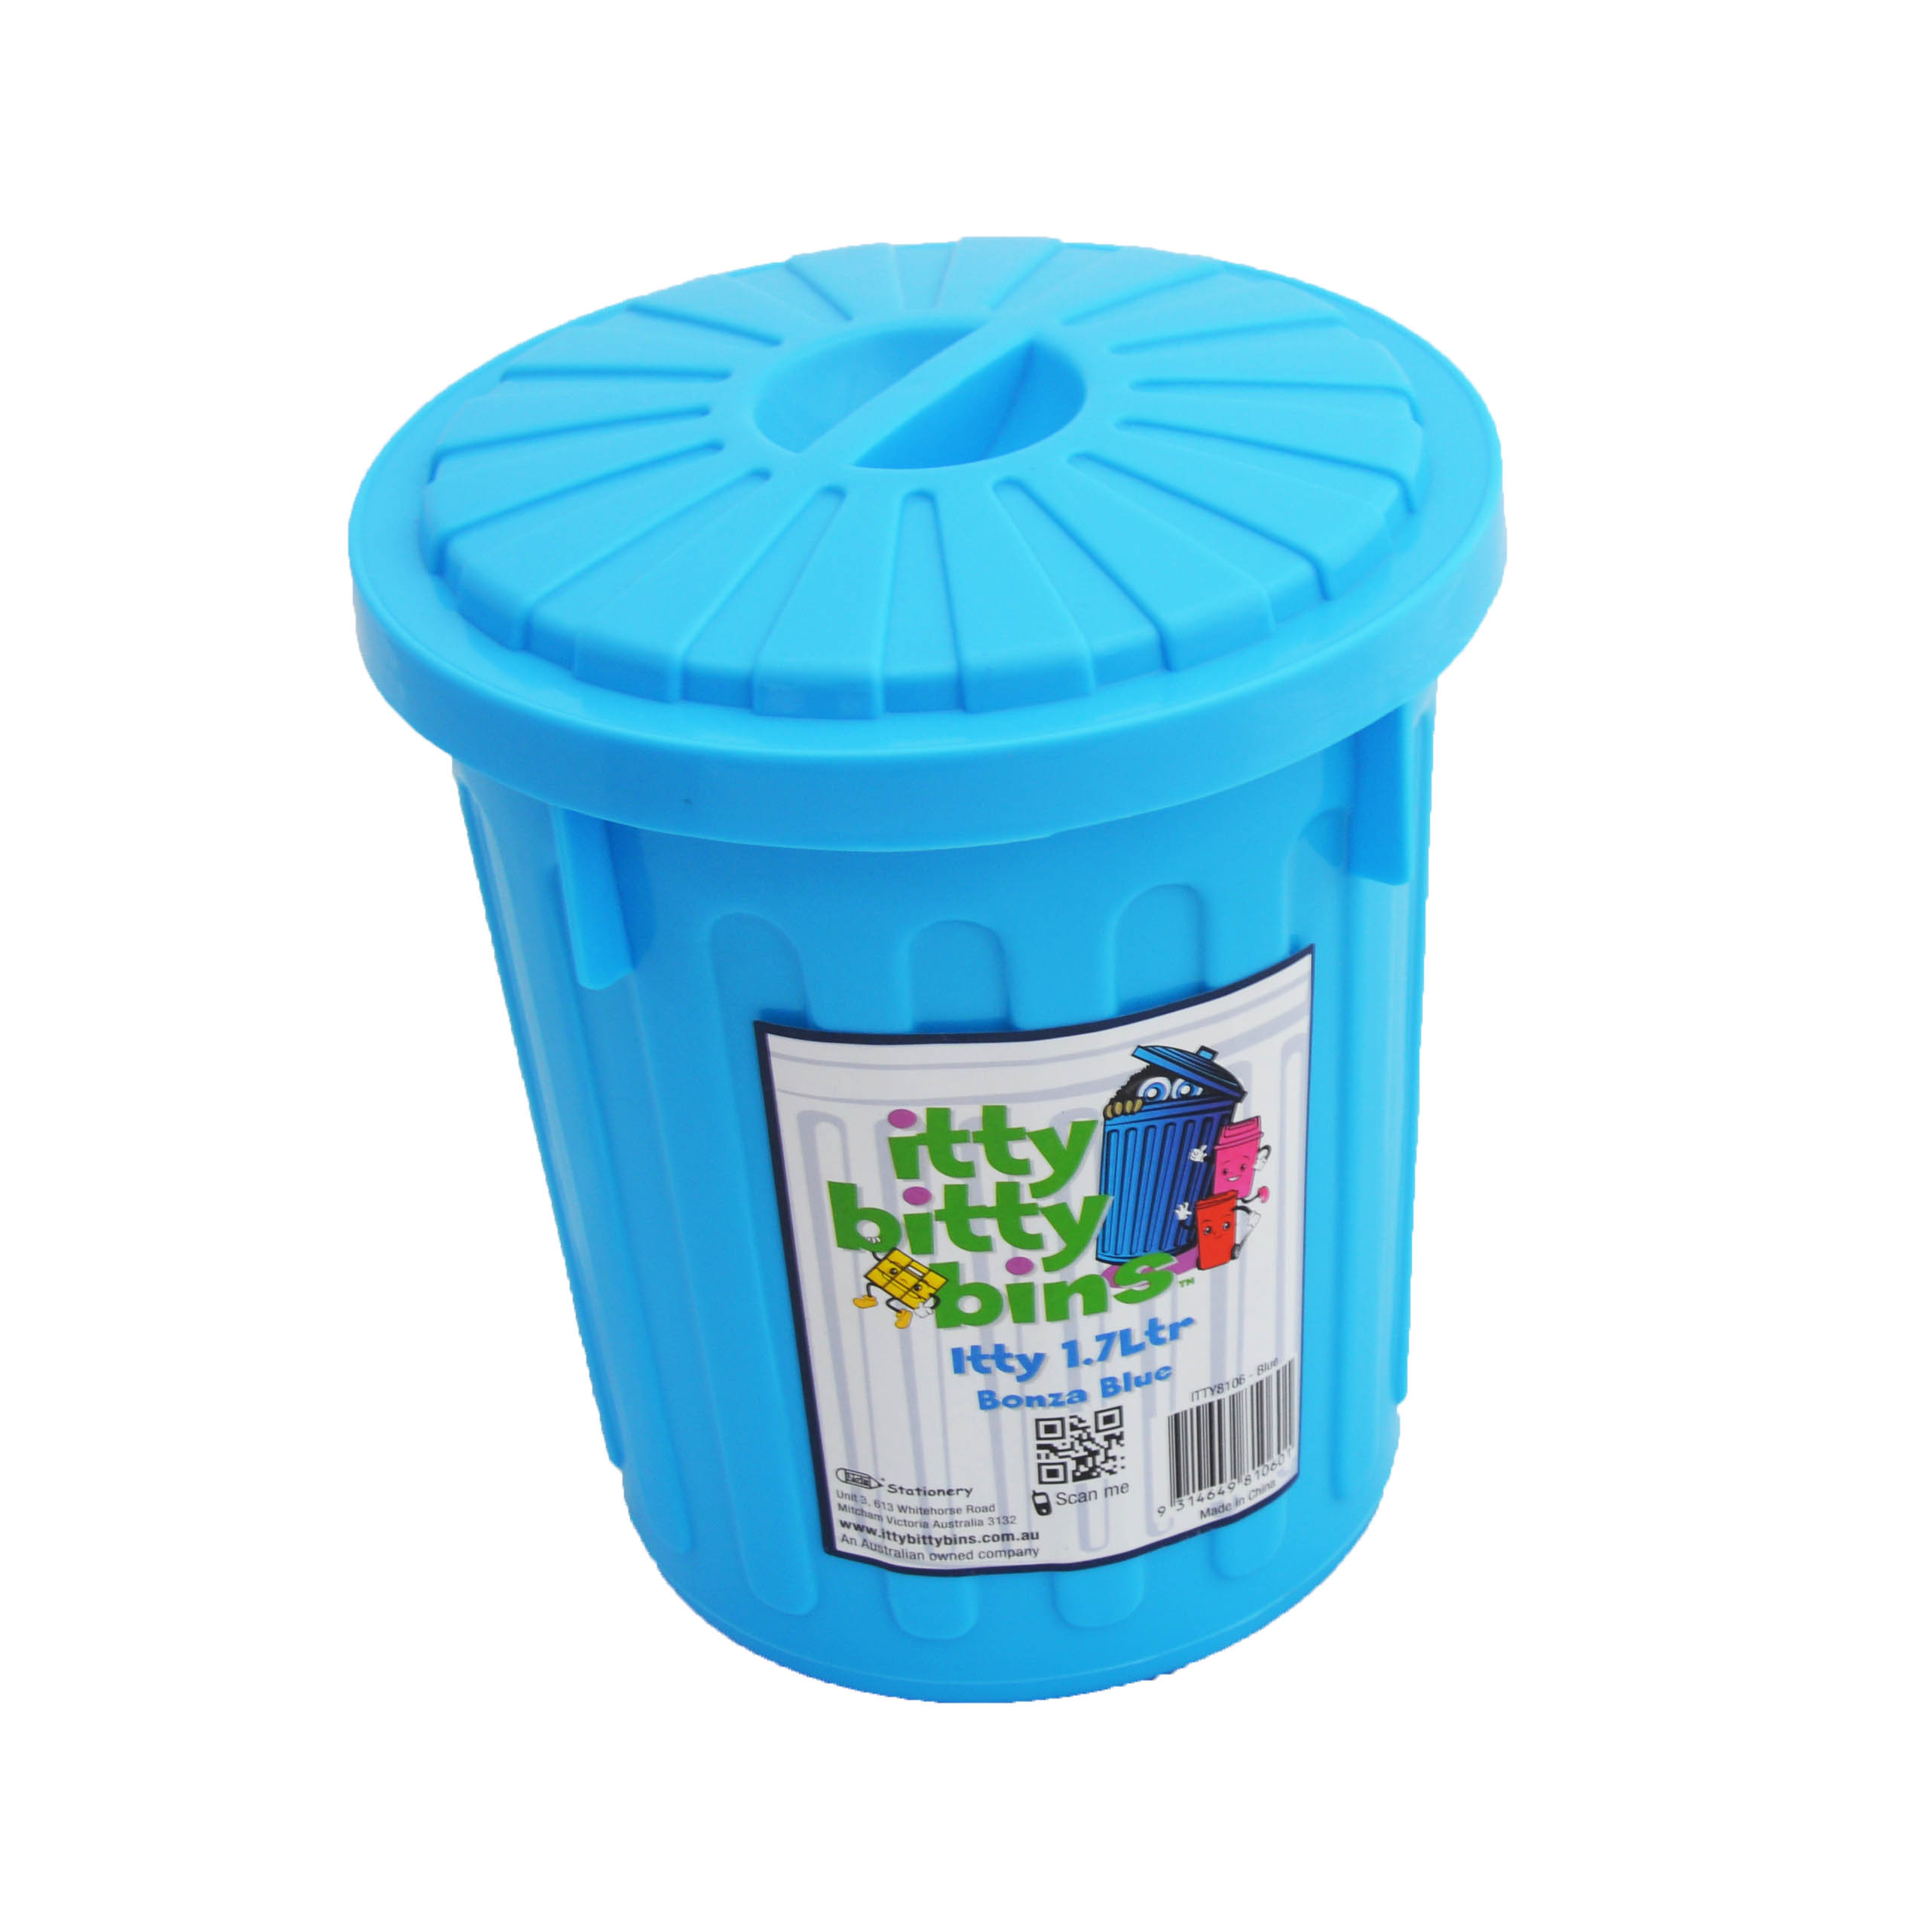 Itty Bitty Bins 1-7litre Blue Tidy Bin